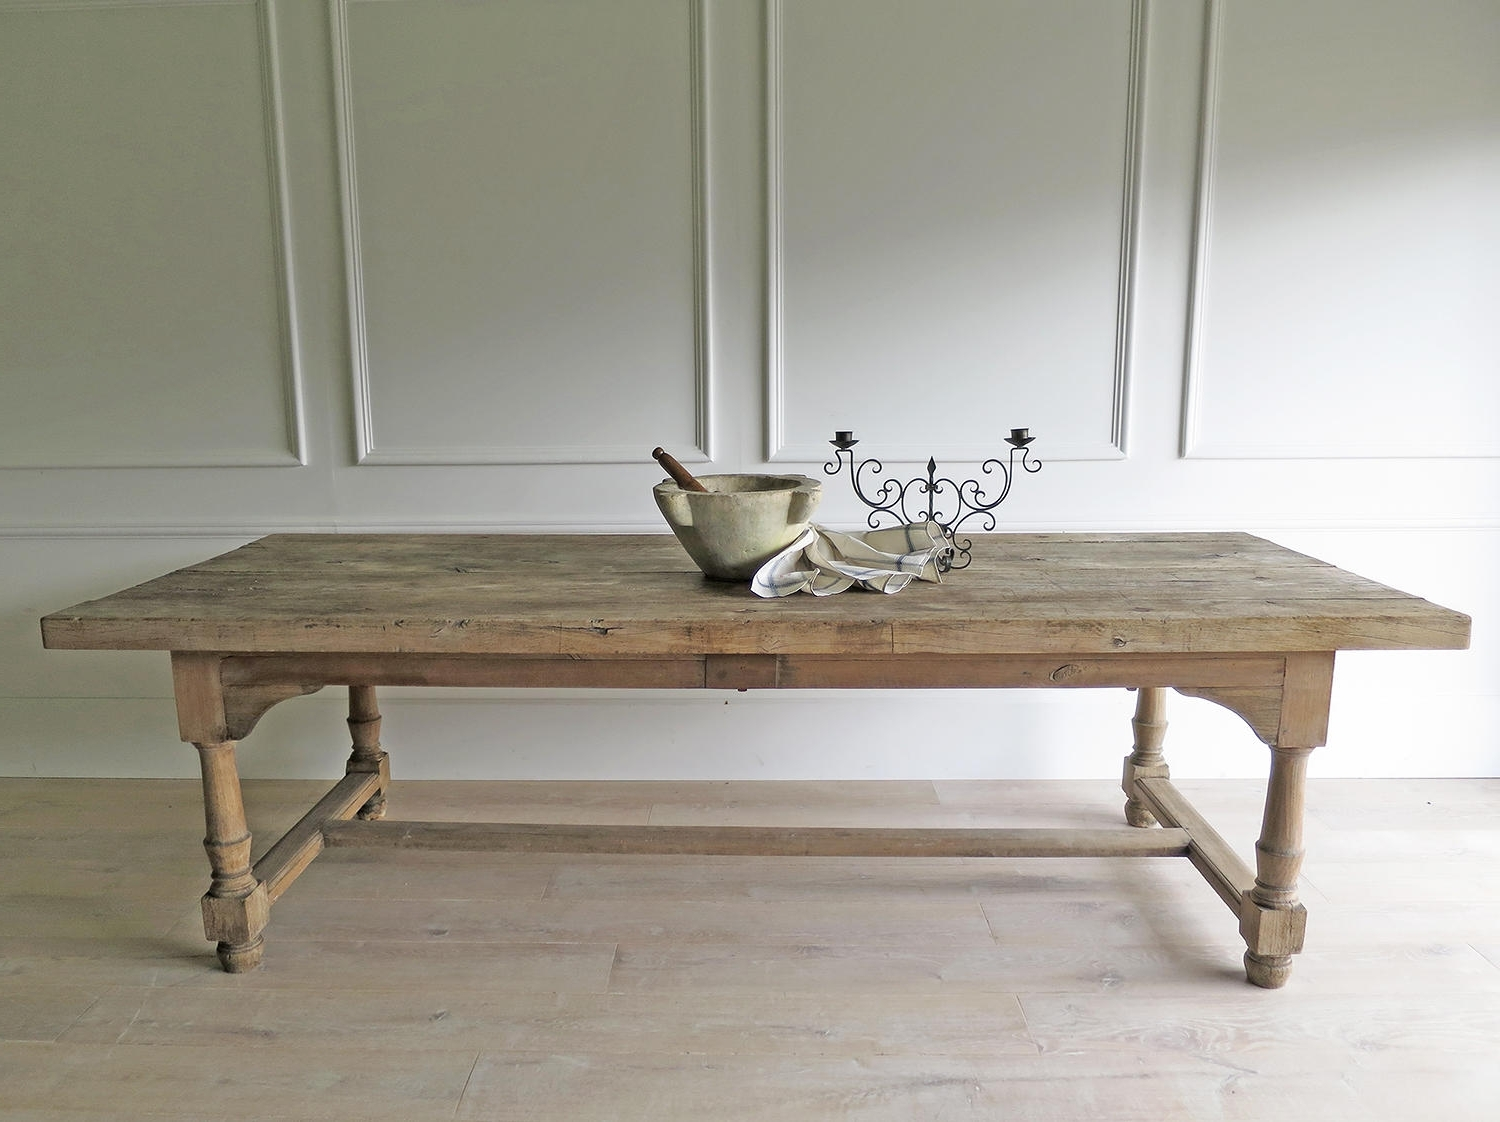 18Th C French Farmhouse Dining Table – Circa 1790 In Antique Tables Throughout Fashionable French Farmhouse Dining Tables (View 3 of 25)